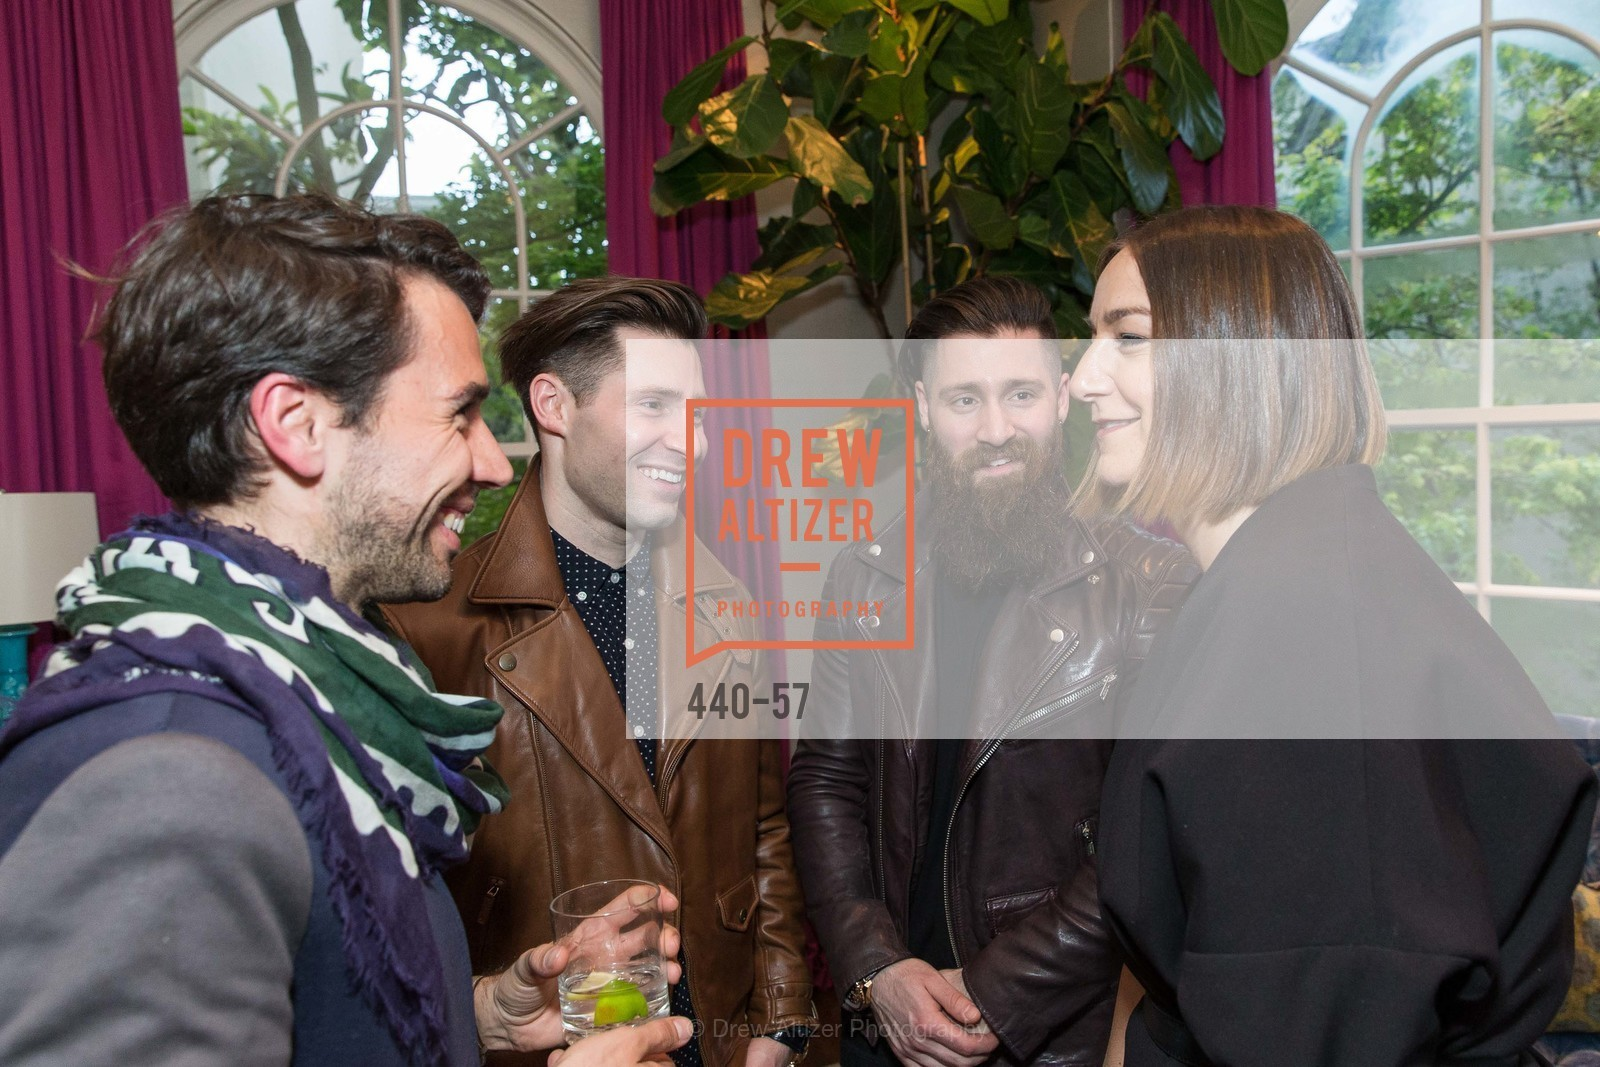 Extras, Katie and Todd Traina Host a Cocktail Party for Net-A-Porter, April 24th, 2015, Photo,Drew Altizer, Drew Altizer Photography, full-service event agency, private events, San Francisco photographer, photographer California